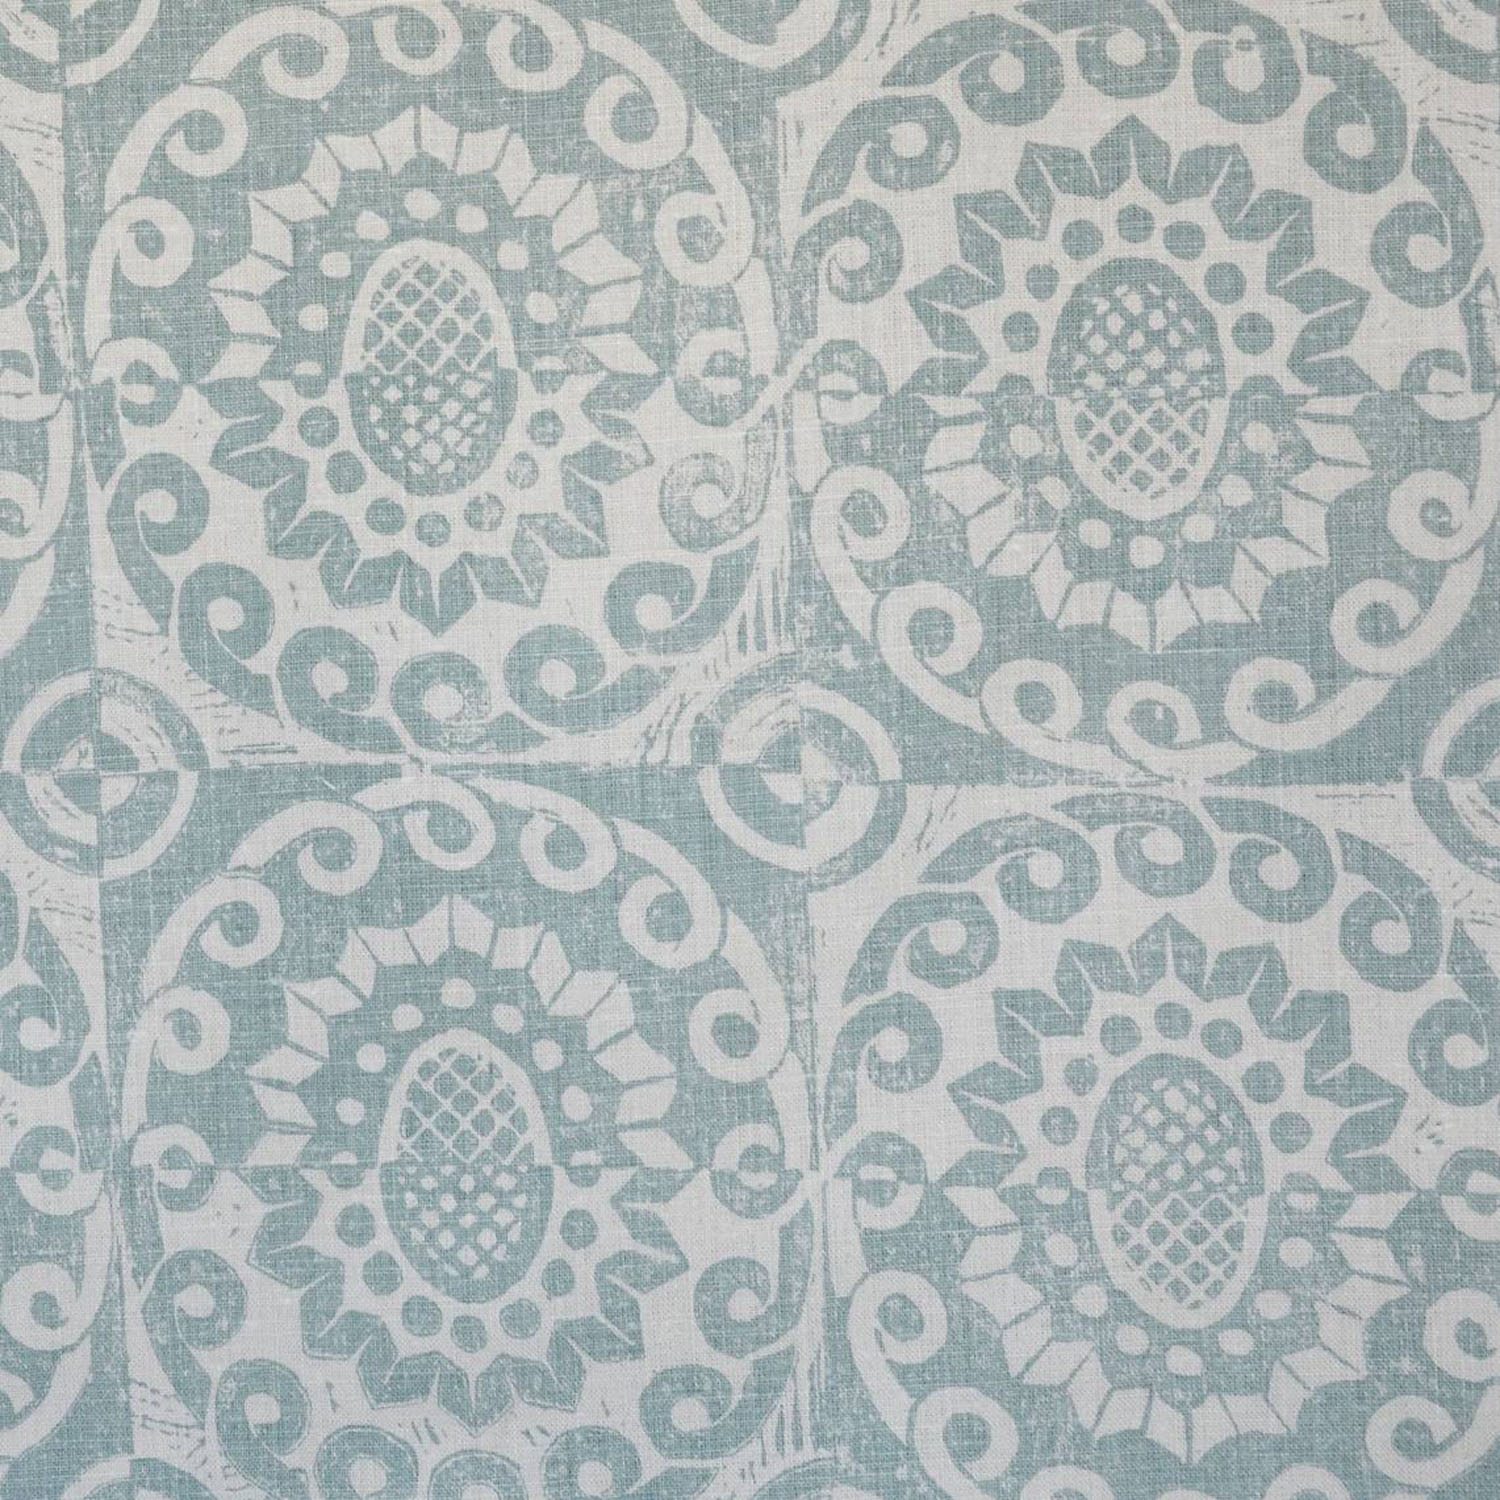 <p><strong>PINEAPPLE</strong>aqua/oyster 3000-01<a href=/the-peggy-angus-collection/pineapple-aqua-oyster3000-01>More →</a></p>